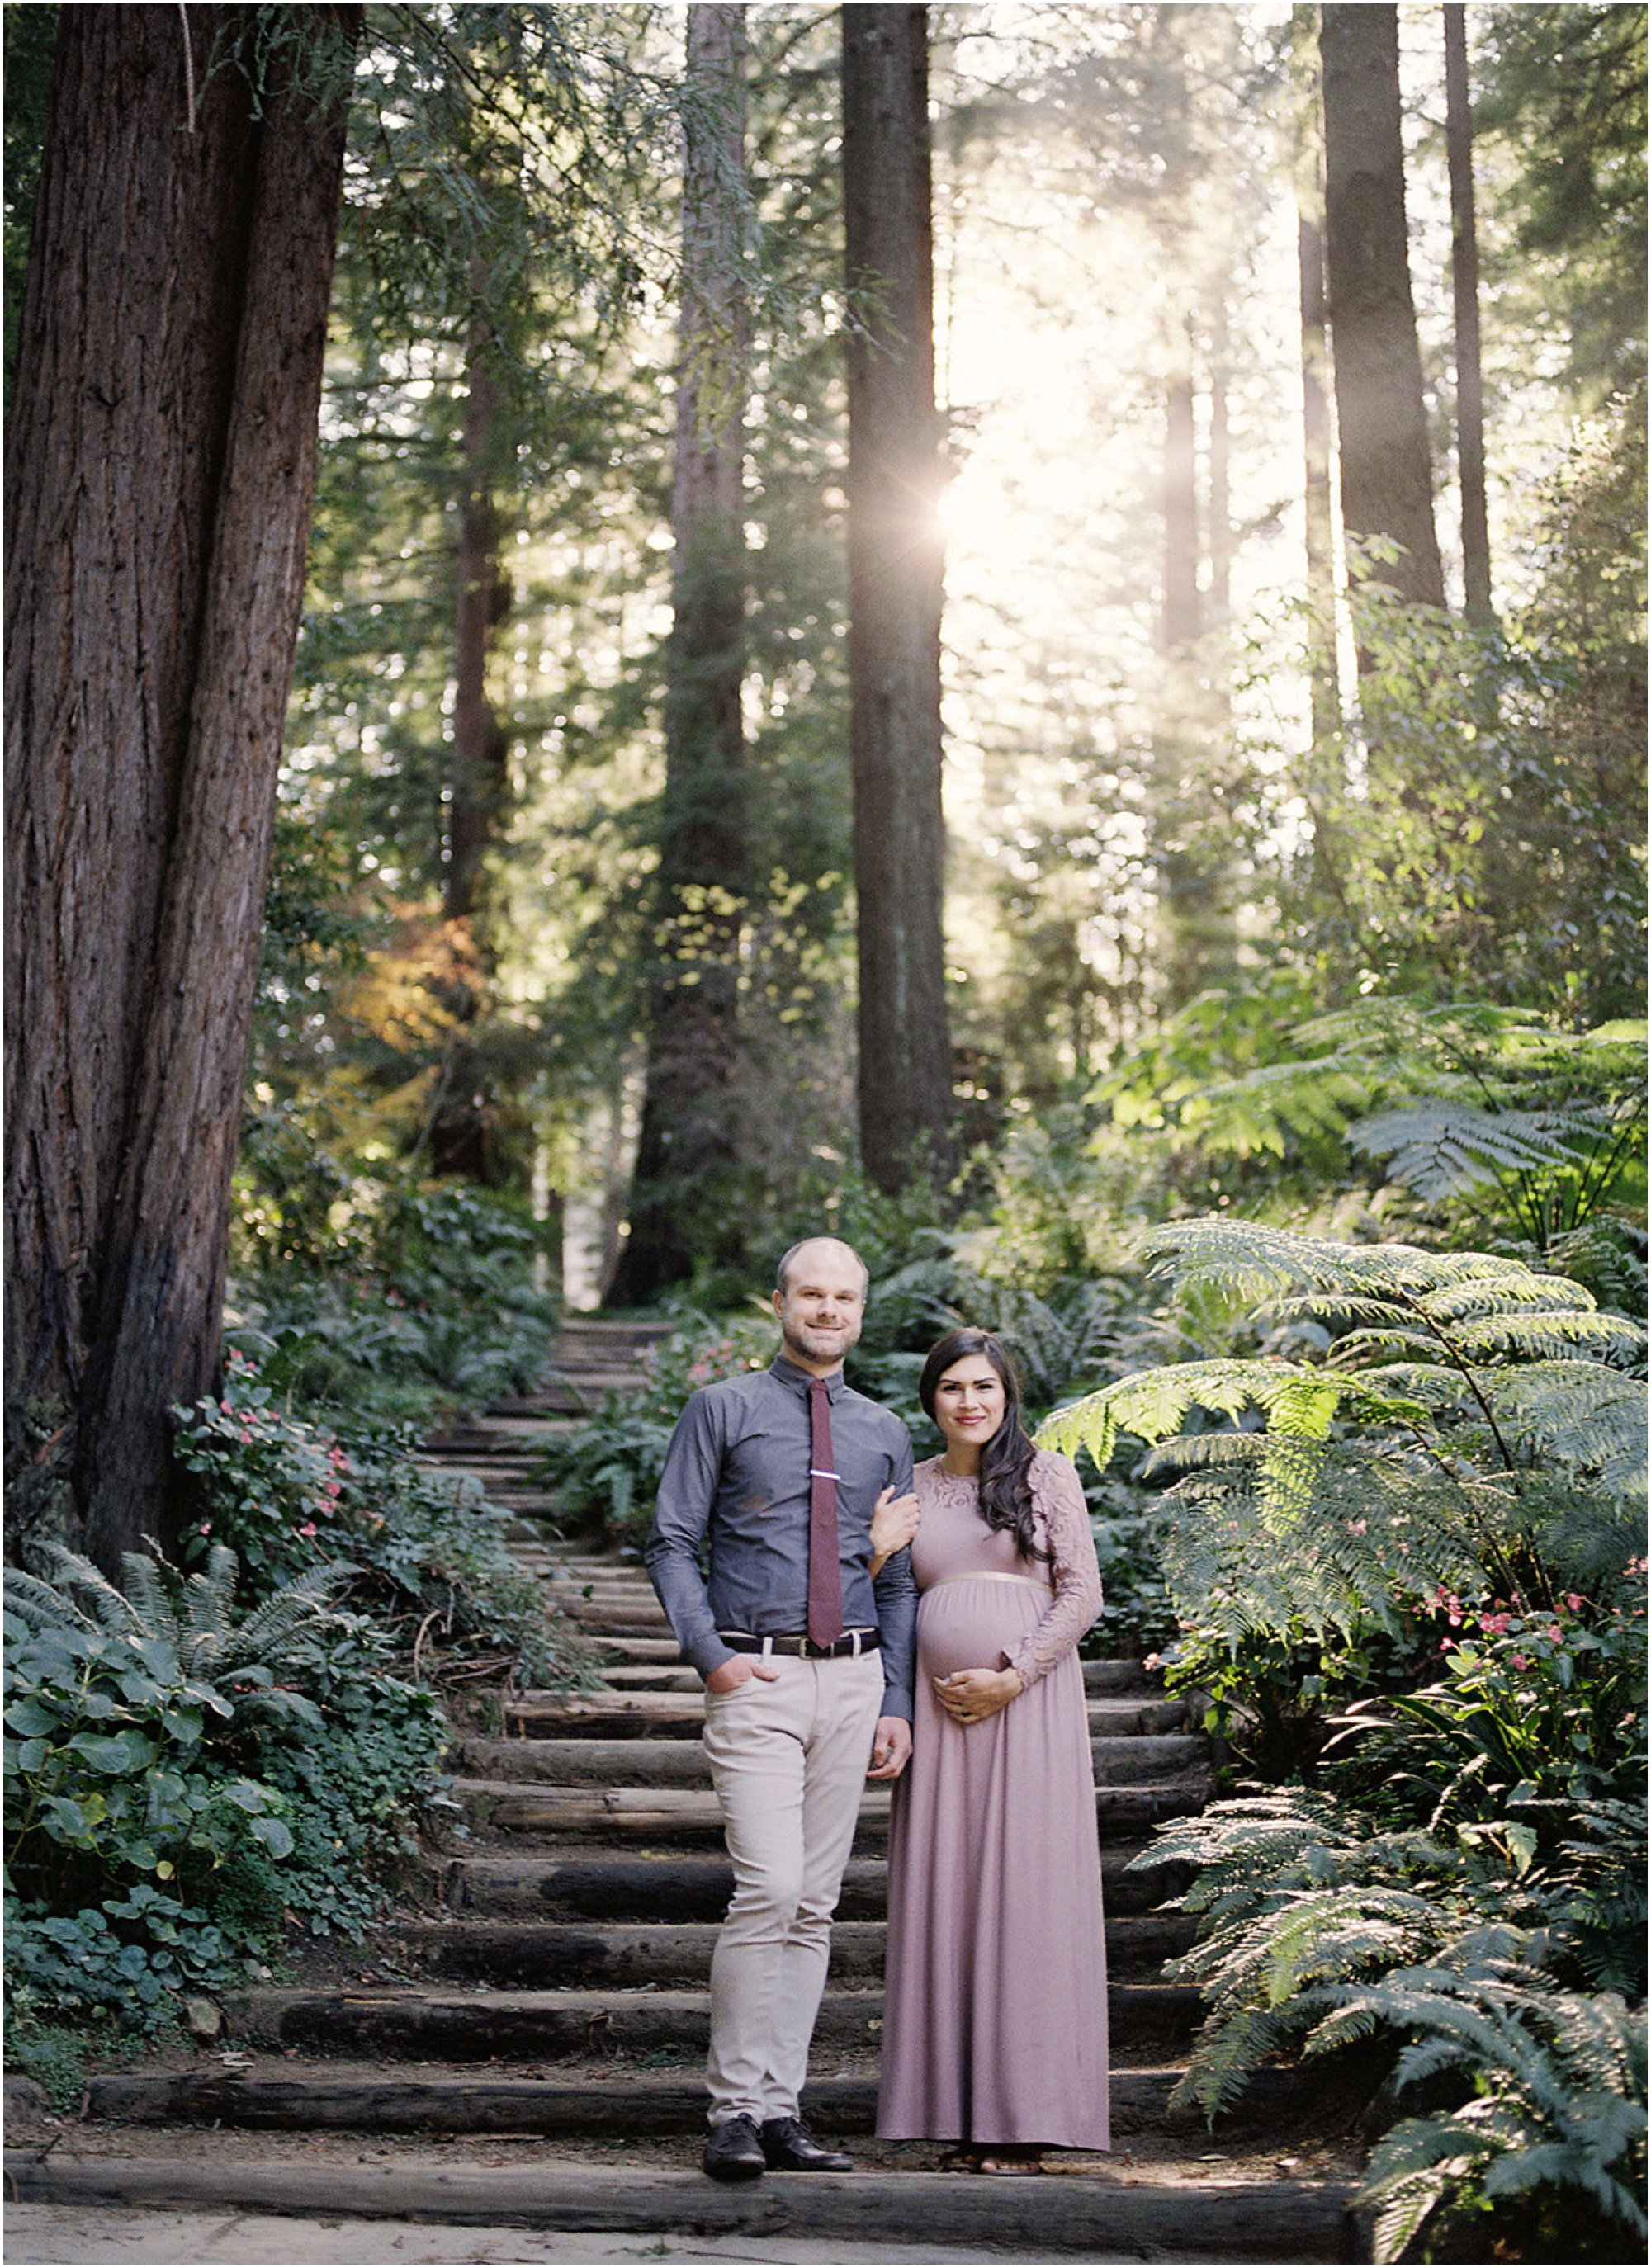 Maternity photos.  Briana Calderon Photography based in Tacoma, WA_0618.jpg